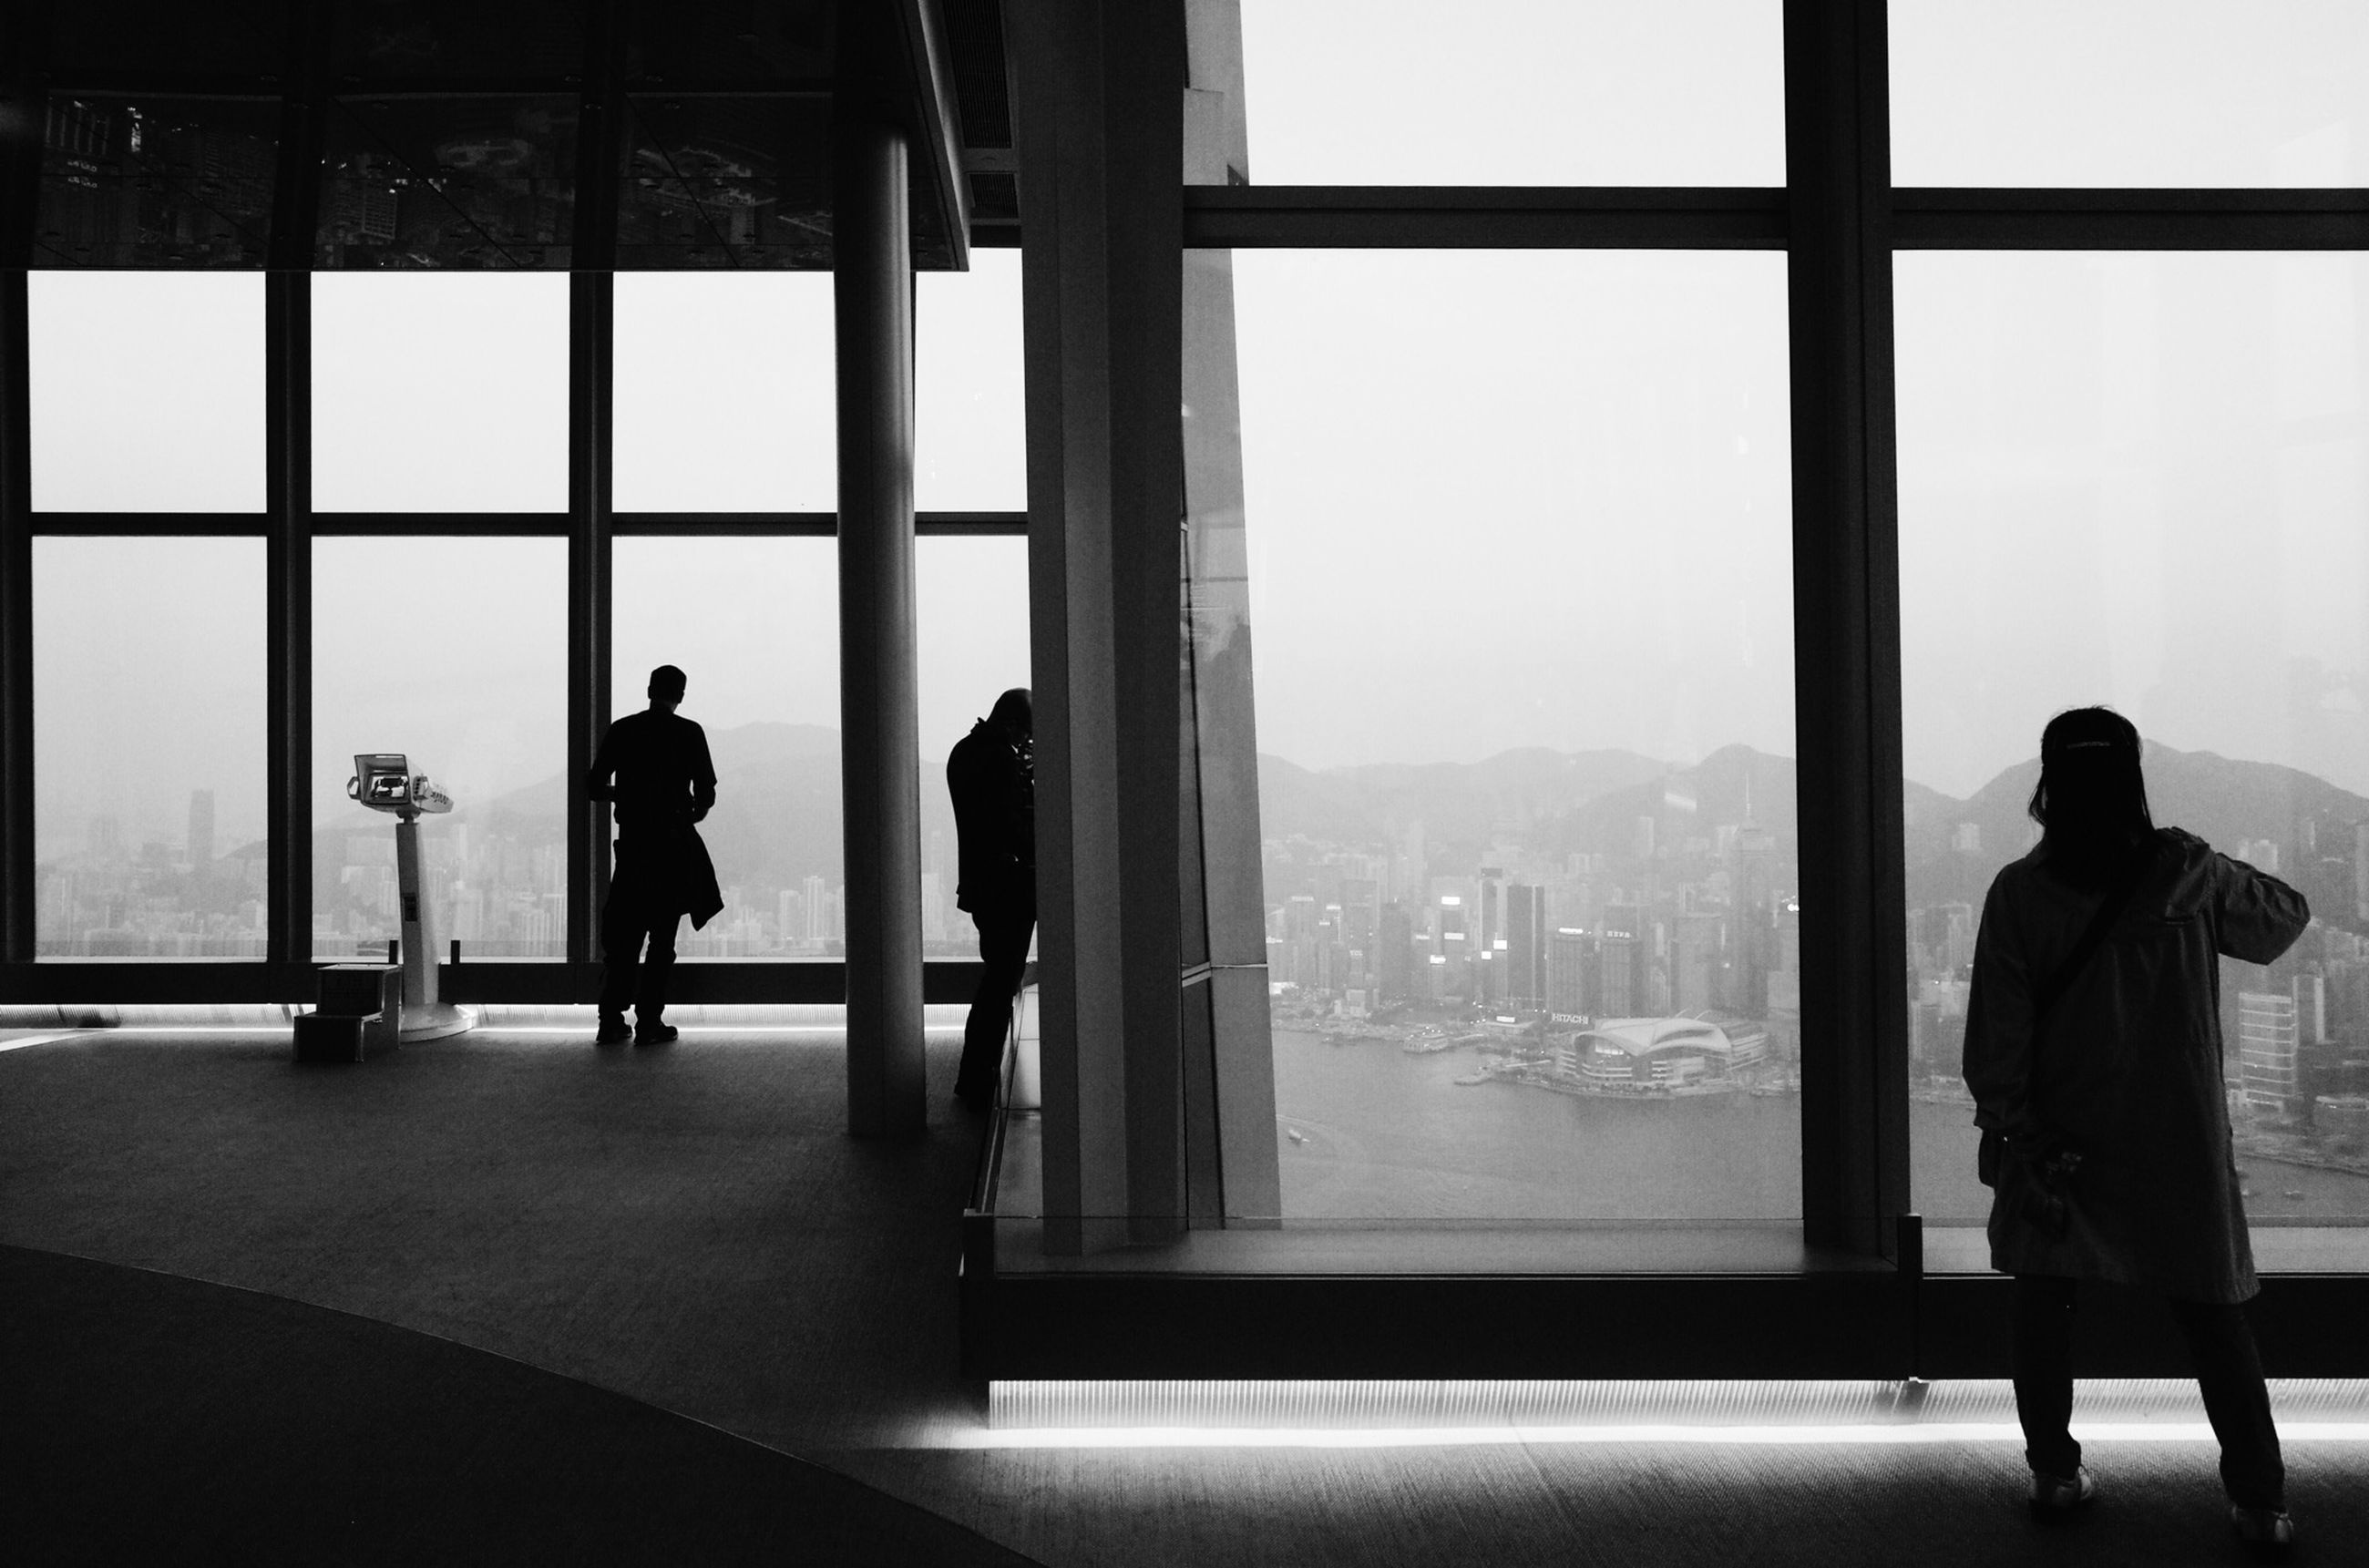 indoors, window, glass - material, lifestyles, men, transparent, rear view, standing, person, silhouette, full length, leisure activity, architecture, looking through window, built structure, day, sitting